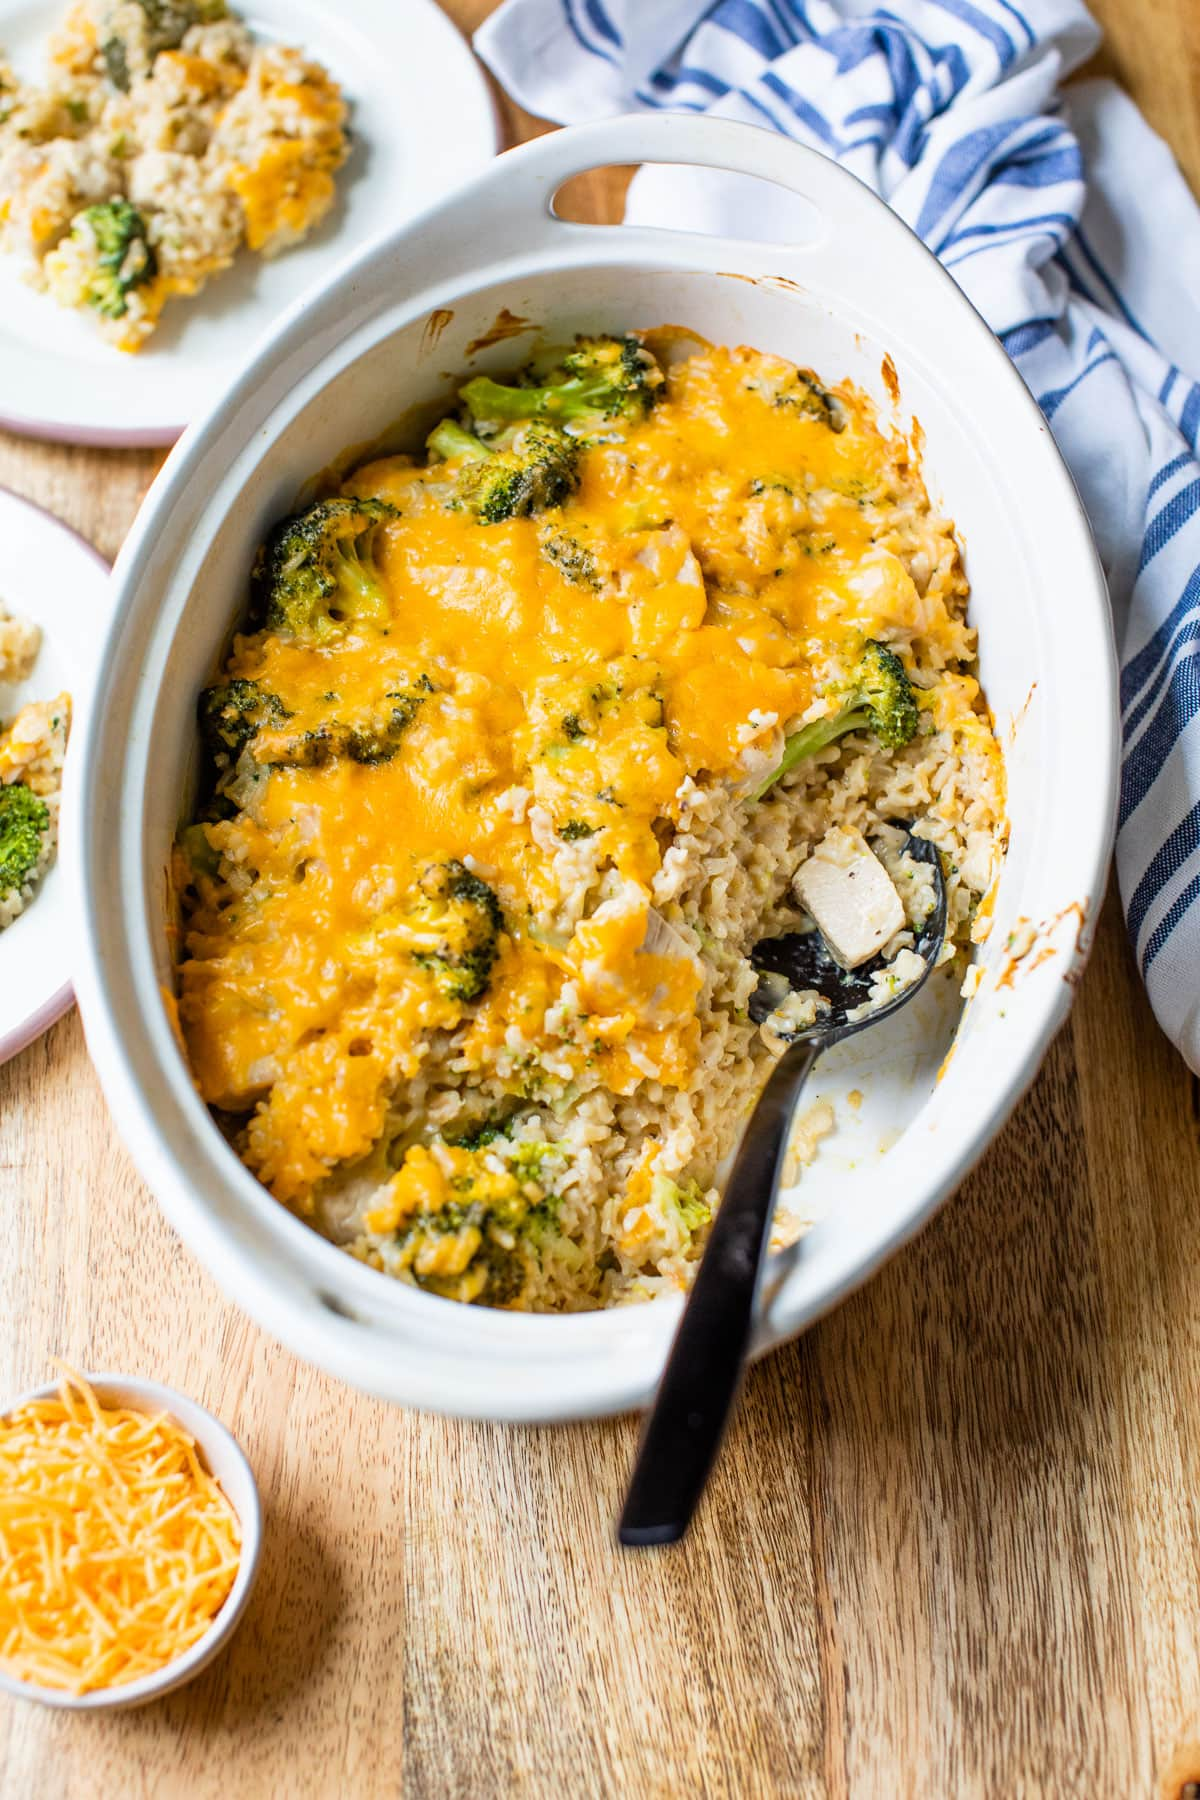 Chicken broccoli rice casserole in a baking dish